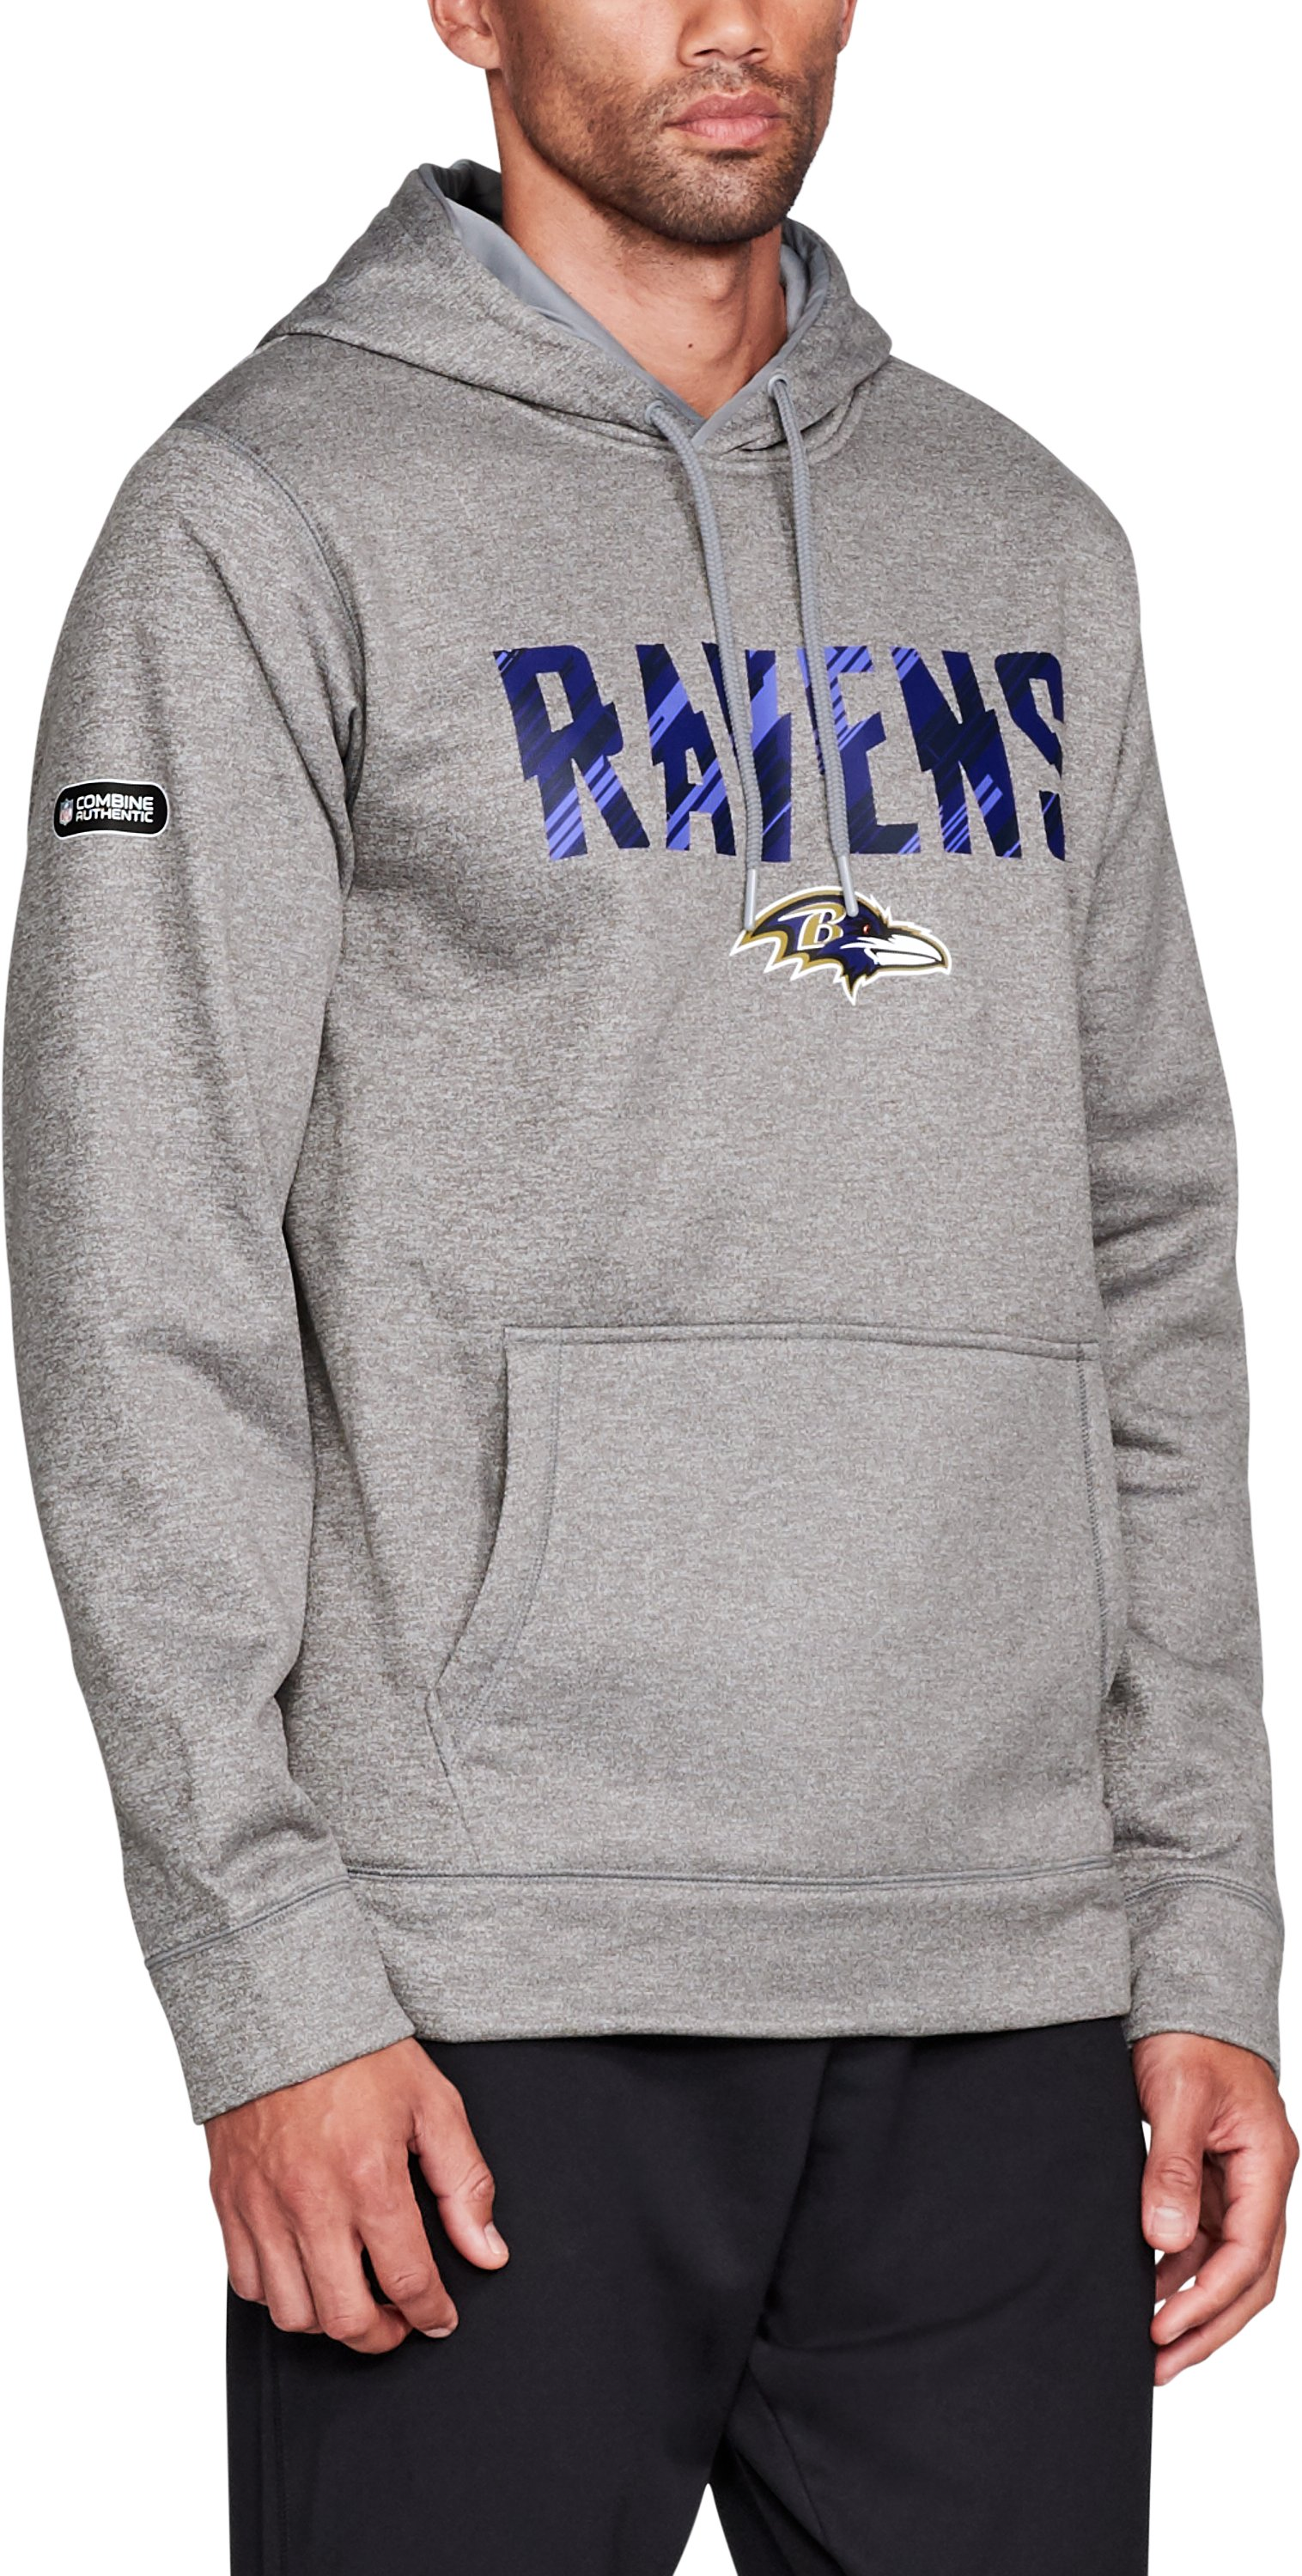 , Baltimore Ravens, zoomed